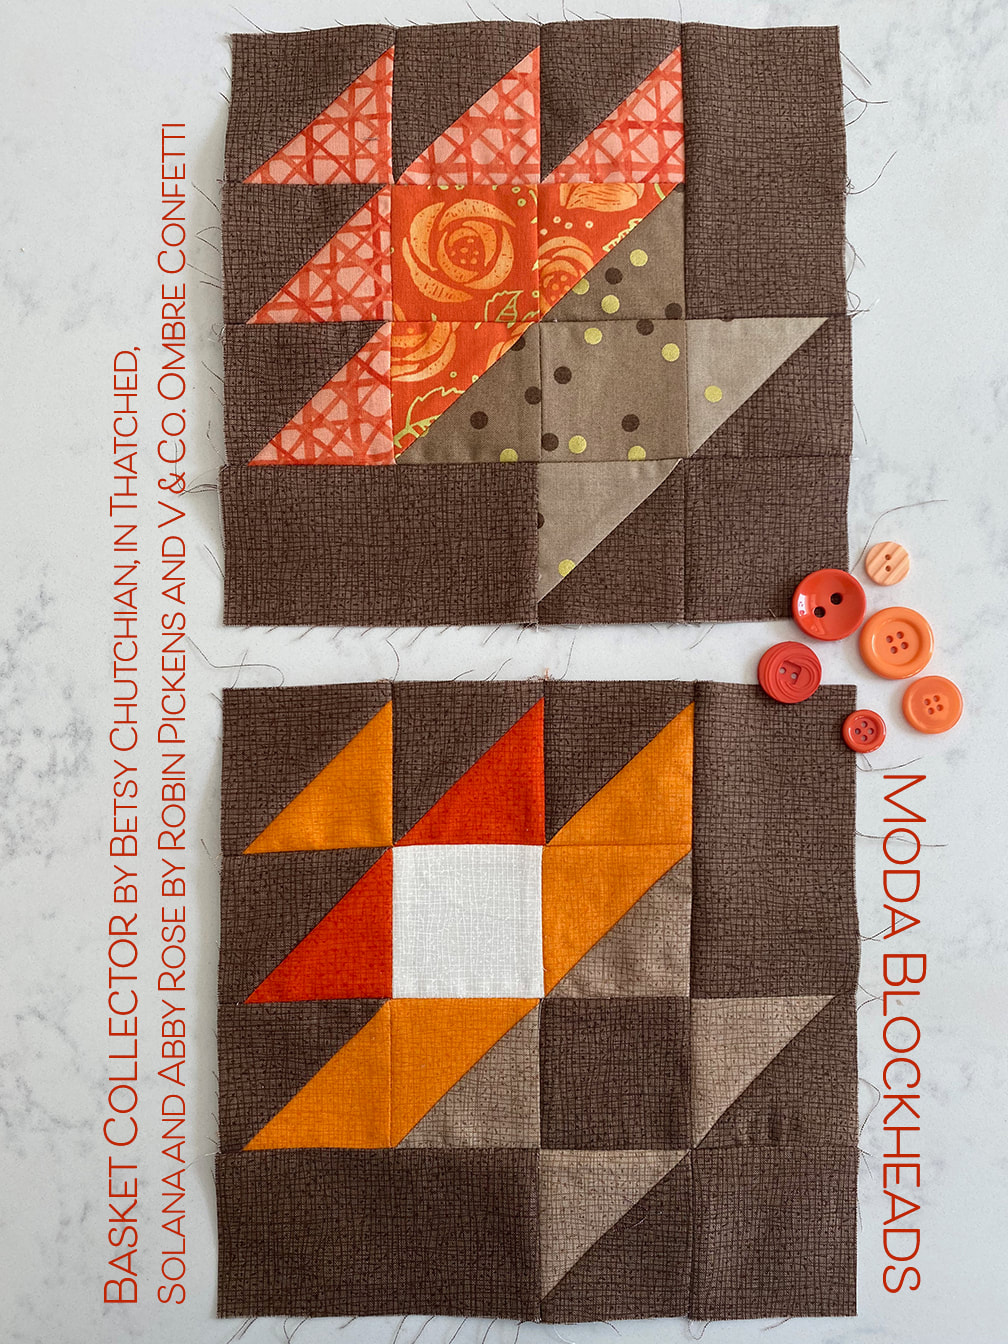 Basket Collector quilt block for Moda Blockheads from Betsy Chutchian done in Robin Pickens fabrics